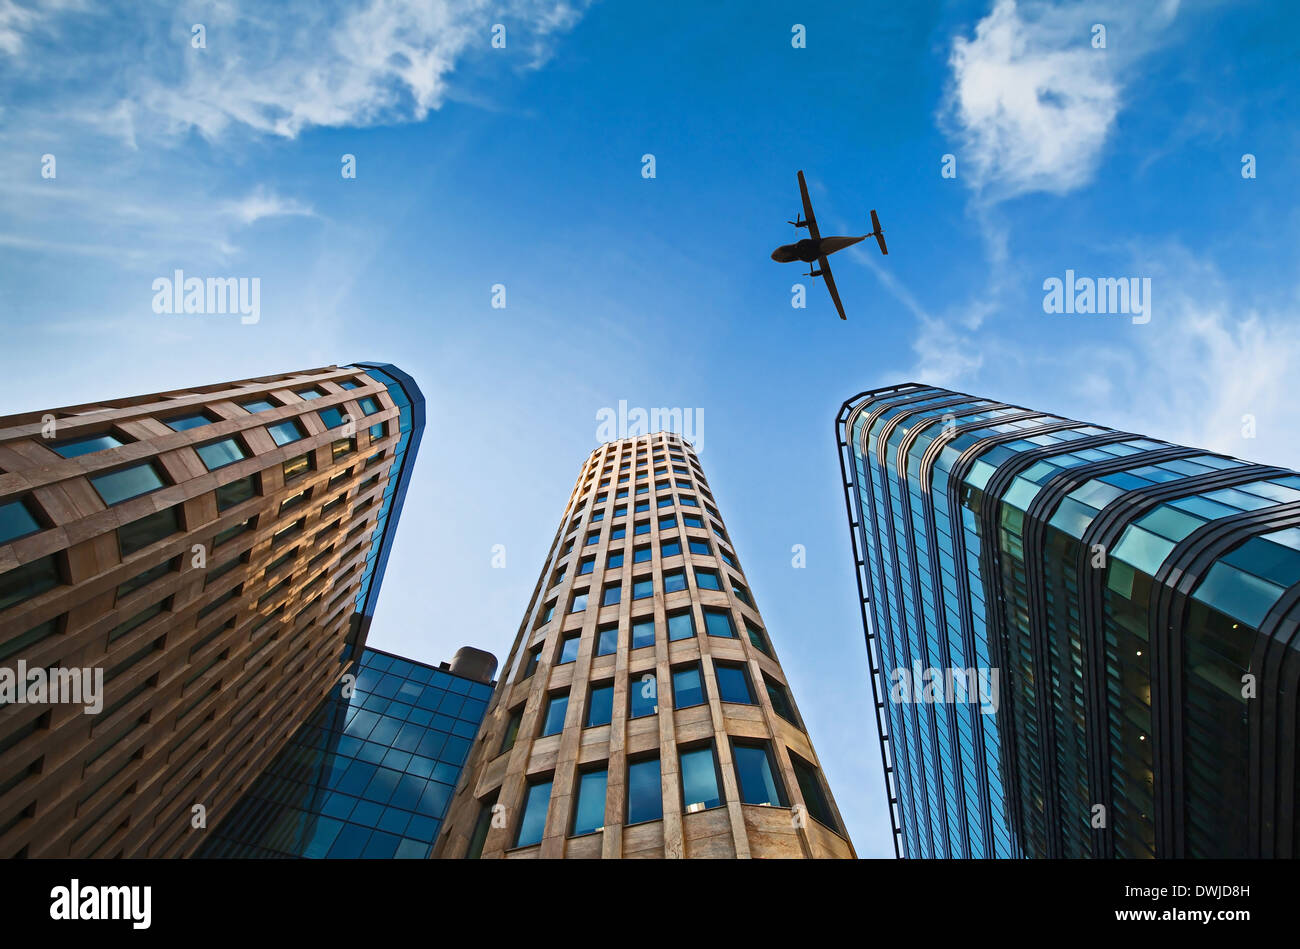 plane over office buildings - Stock Image